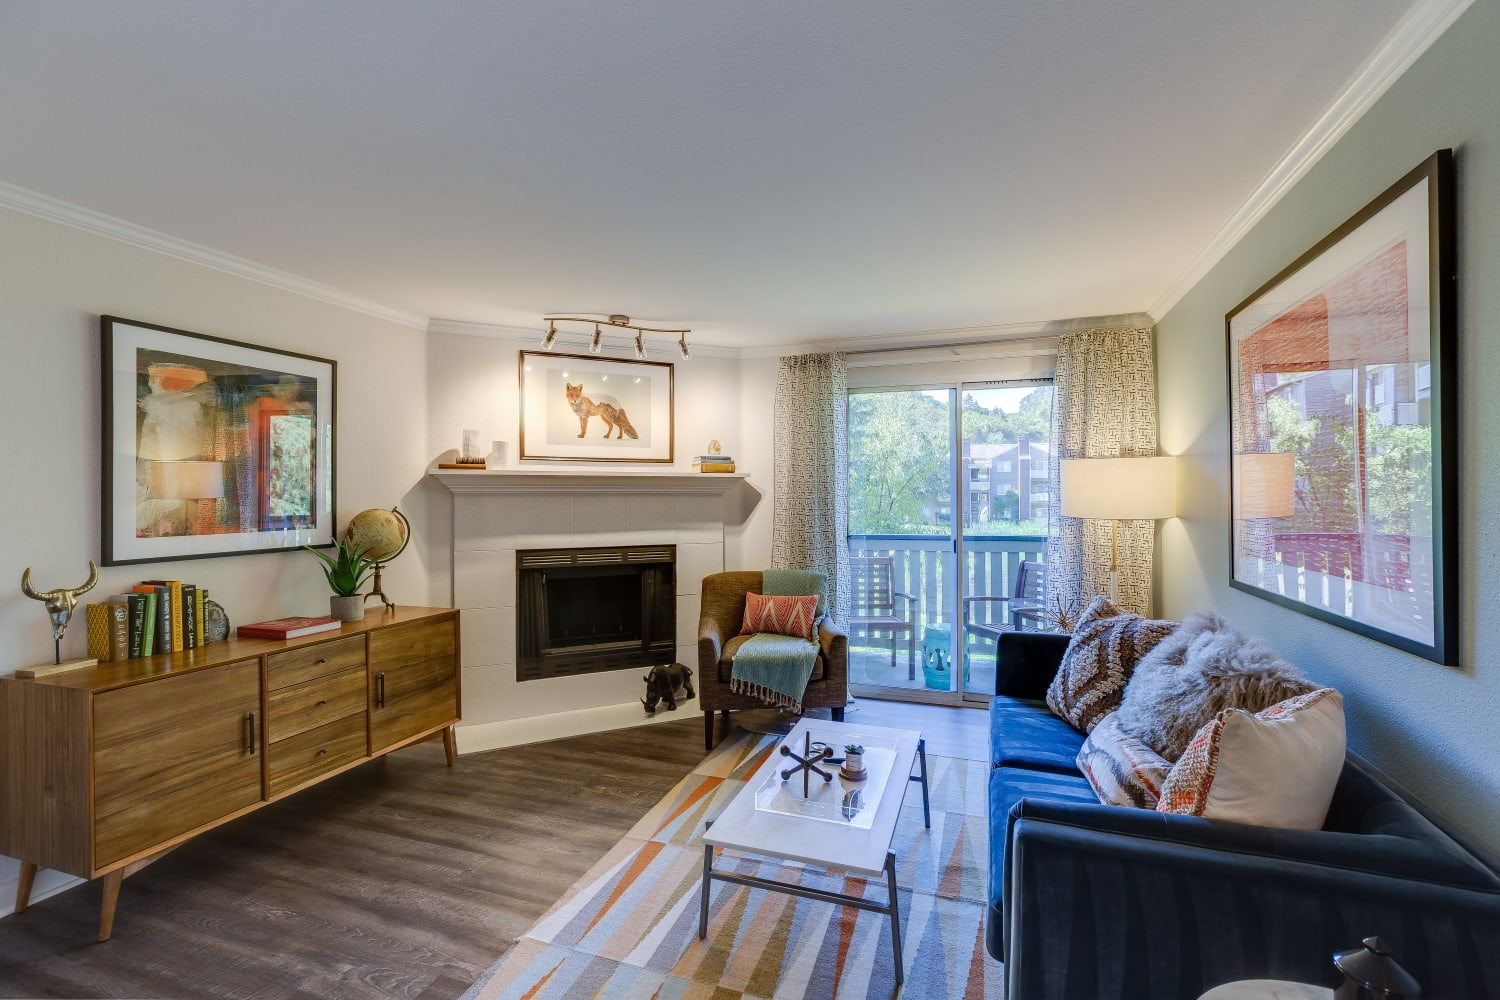 Spacious living room with fireplace and wood floors at The Preserve at Forbes Creek in Kirkland, Washington